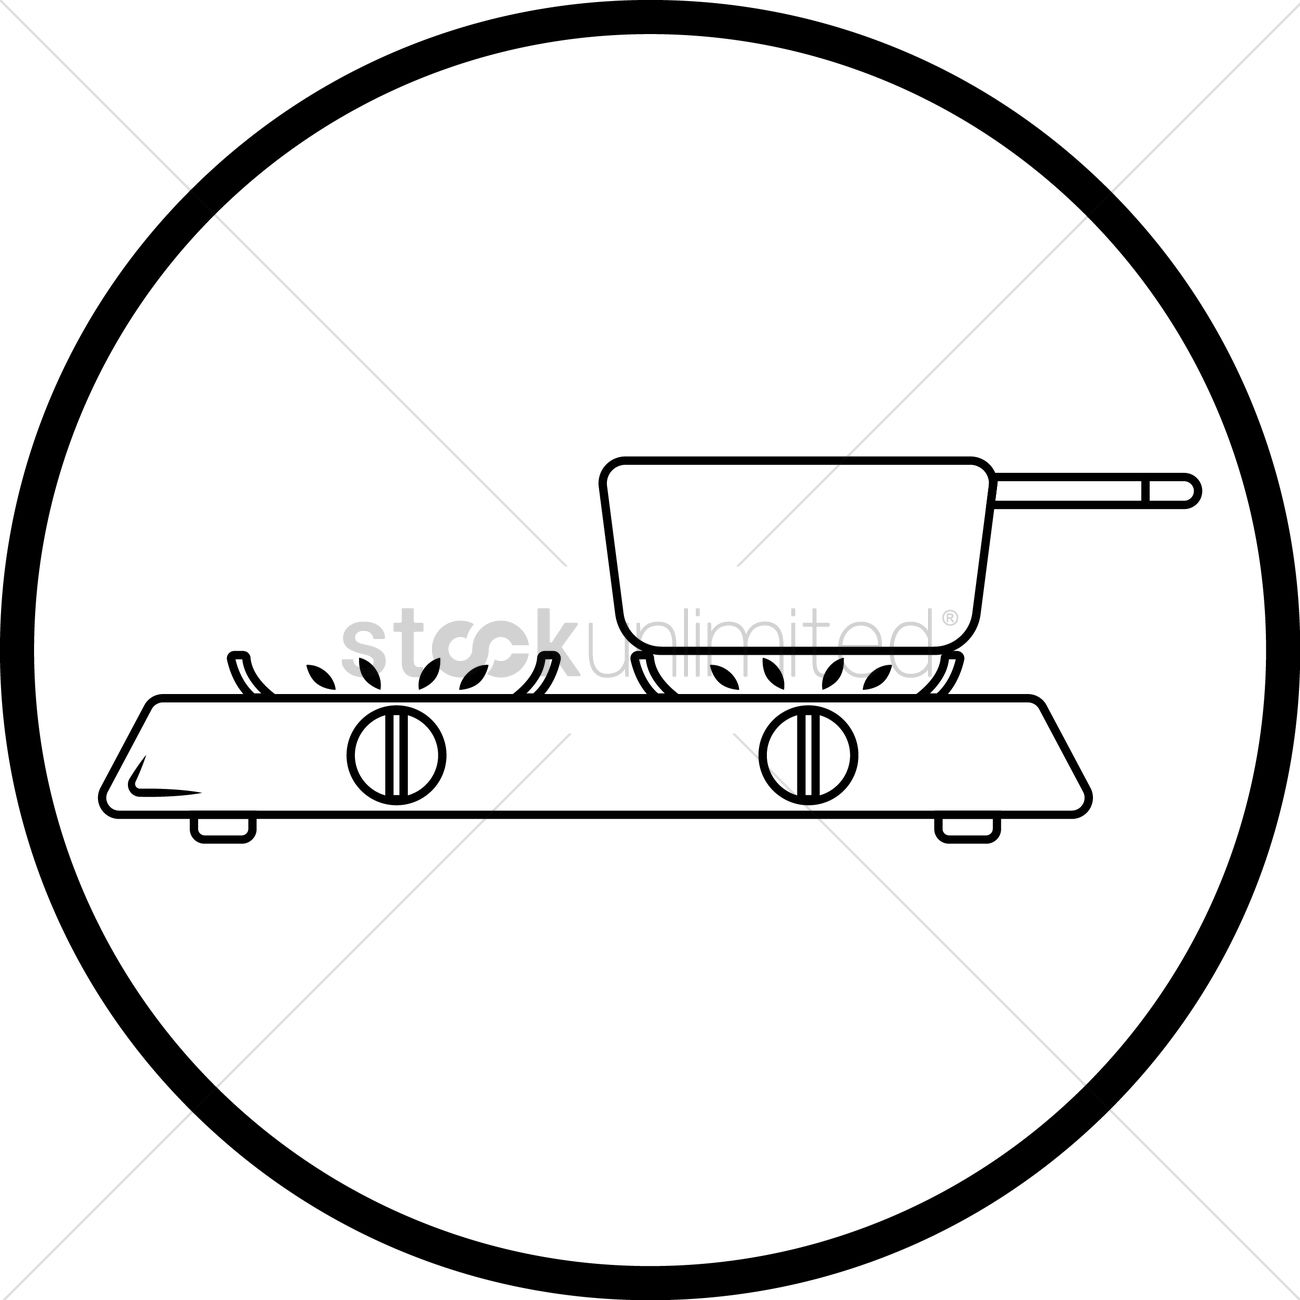 Pot On Stove Vector Image